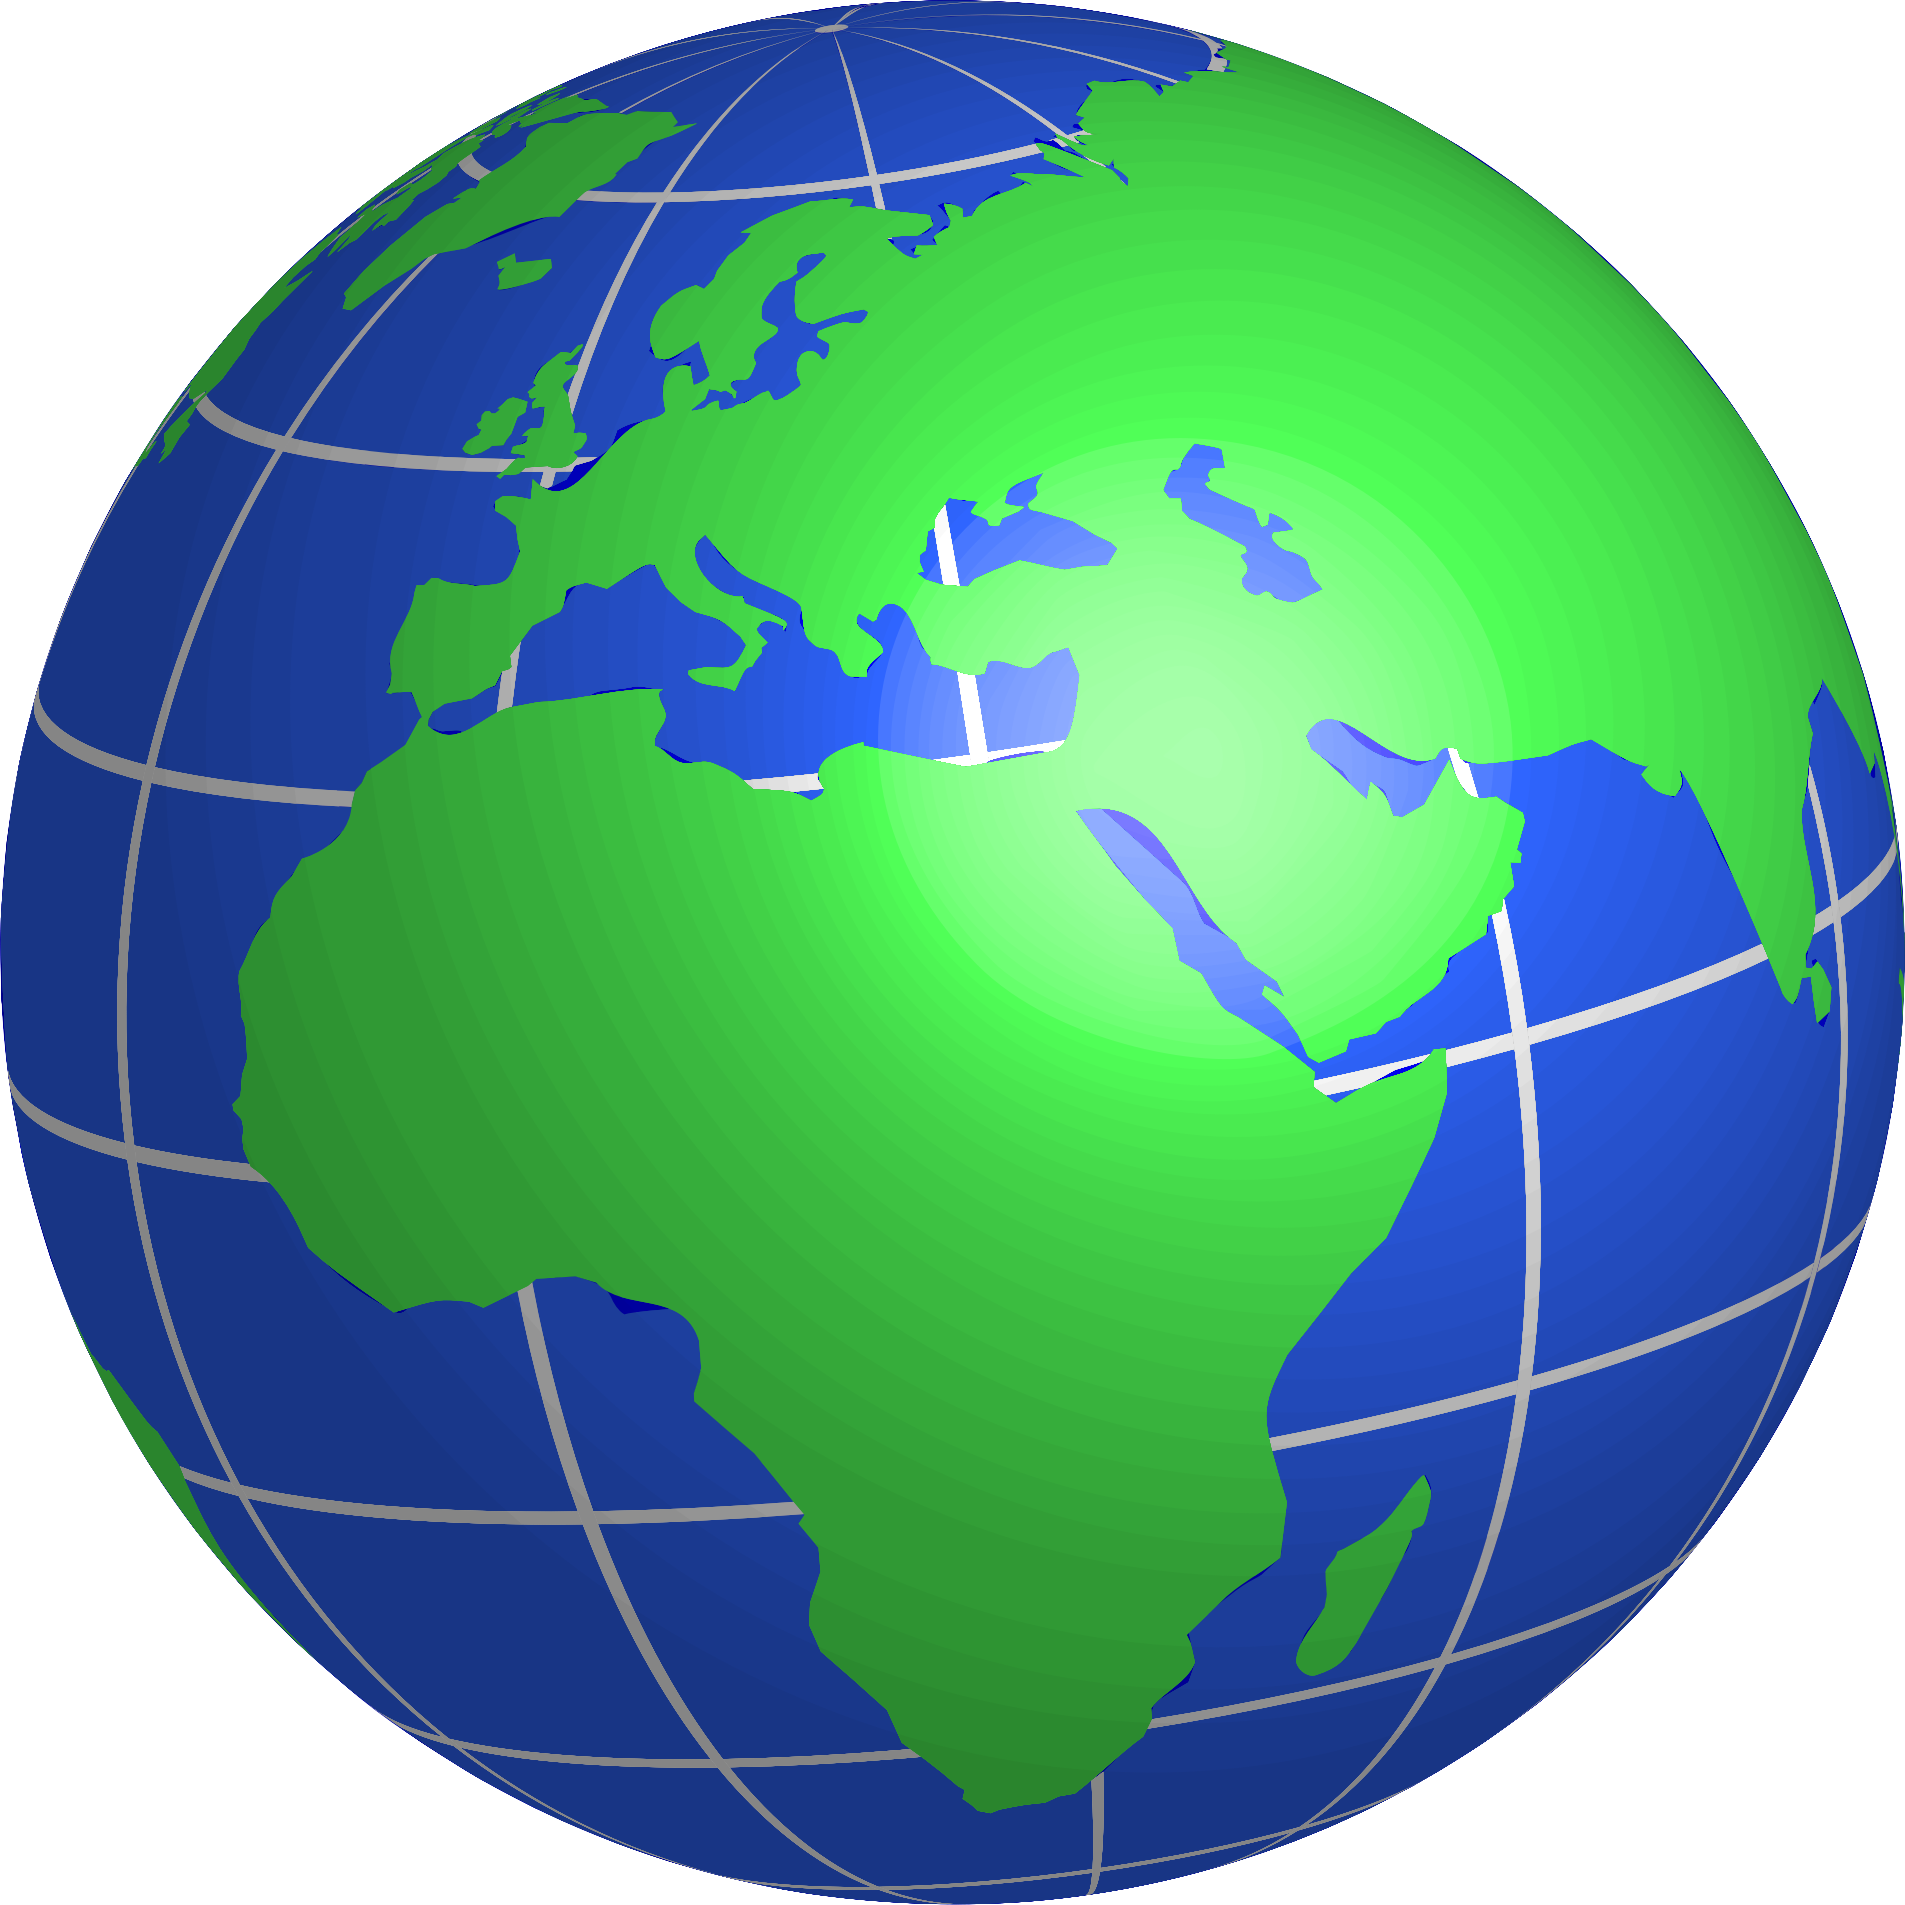 World map globe clipart clipart free library Clipart - Europe, Africa, and Middle East Globe clipart free library